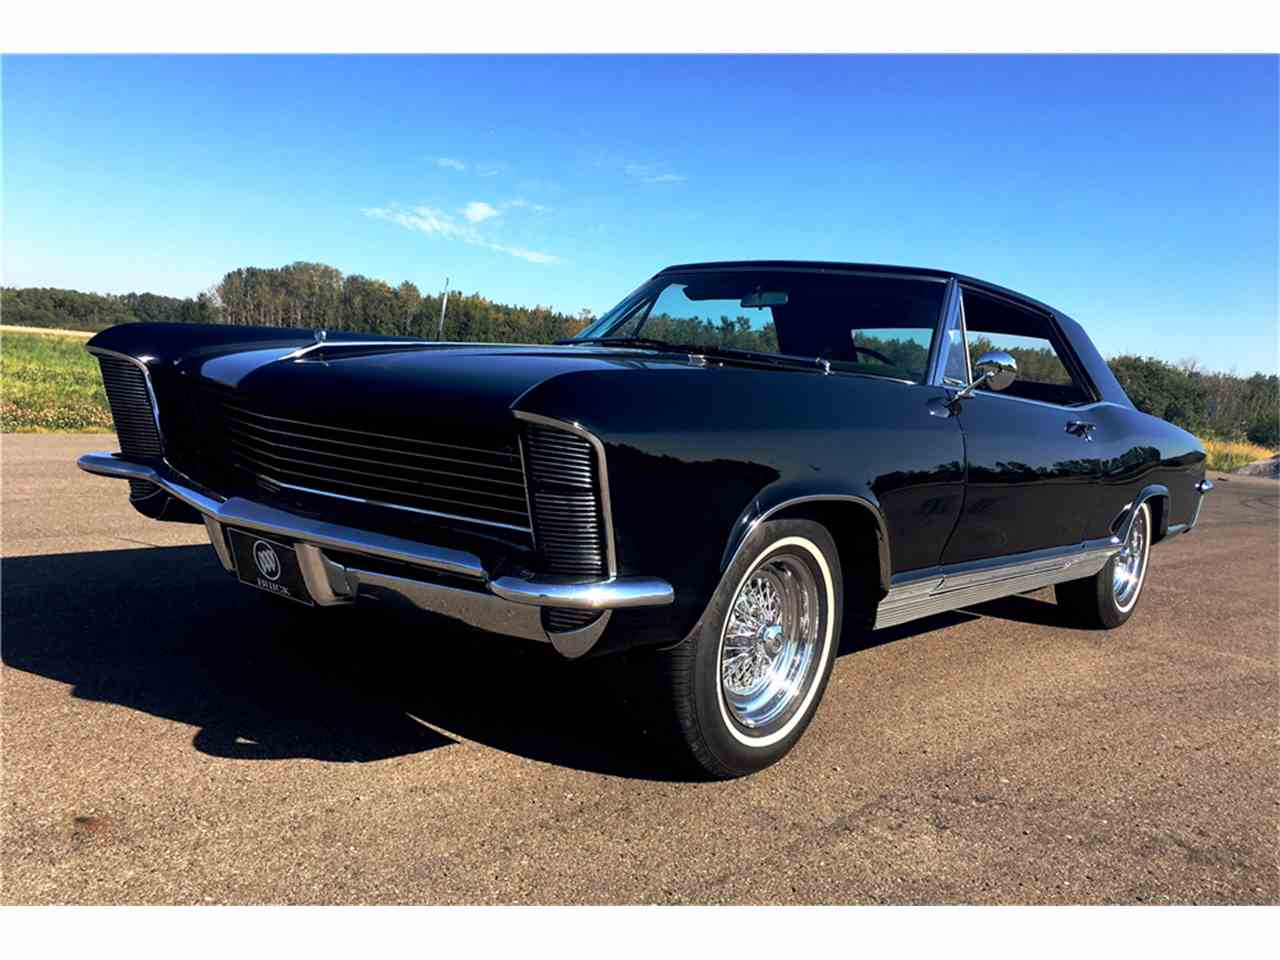 1965 Buick Riviera for Sale | ClicCars.com | CC-1027400 on car dealerships san antonio, car dealerships santa cruz, car dealerships in new york, car dealerships in orlando, car dealerships in florida, car dealerships austin, car dealerships denver, car dealerships portland, car dealerships long island, car dealerships new orleans, car dealerships los angeles, car dealerships columbus, car dealerships fort collins, car dealerships kansas city, car dealerships reno, car dealerships boston, car dealerships stockton, car dealerships maryland, car dealerships milwaukee, car dealerships colorado,